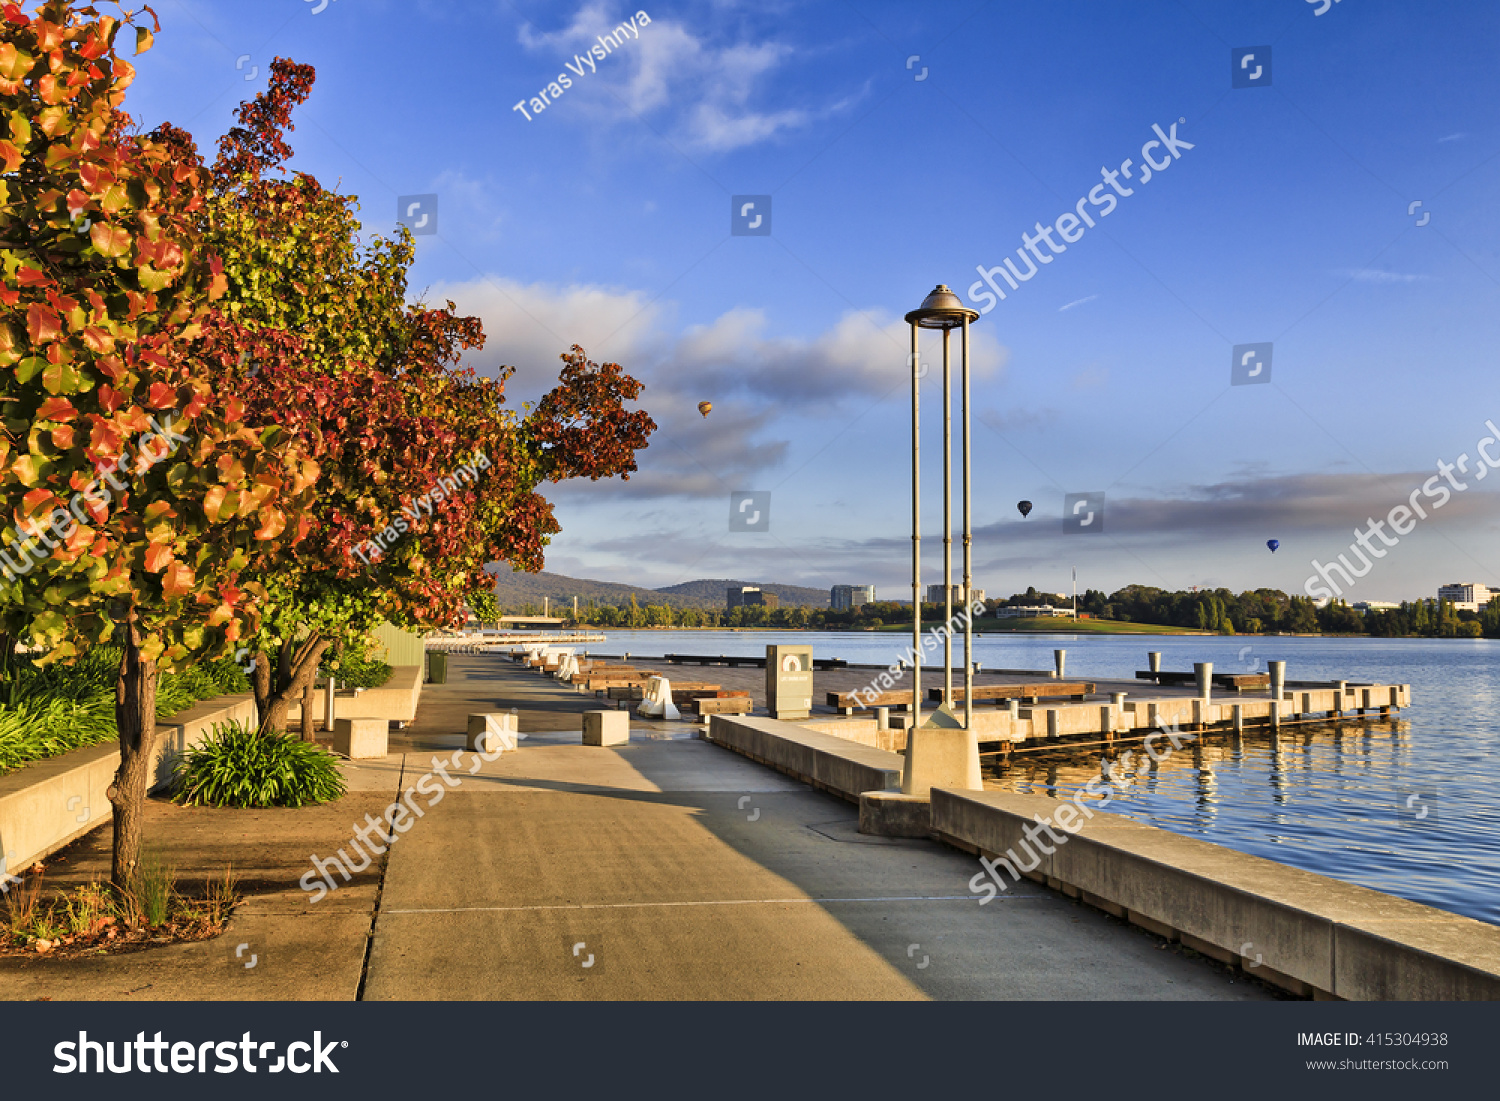 pc-cities-canberra.jpg